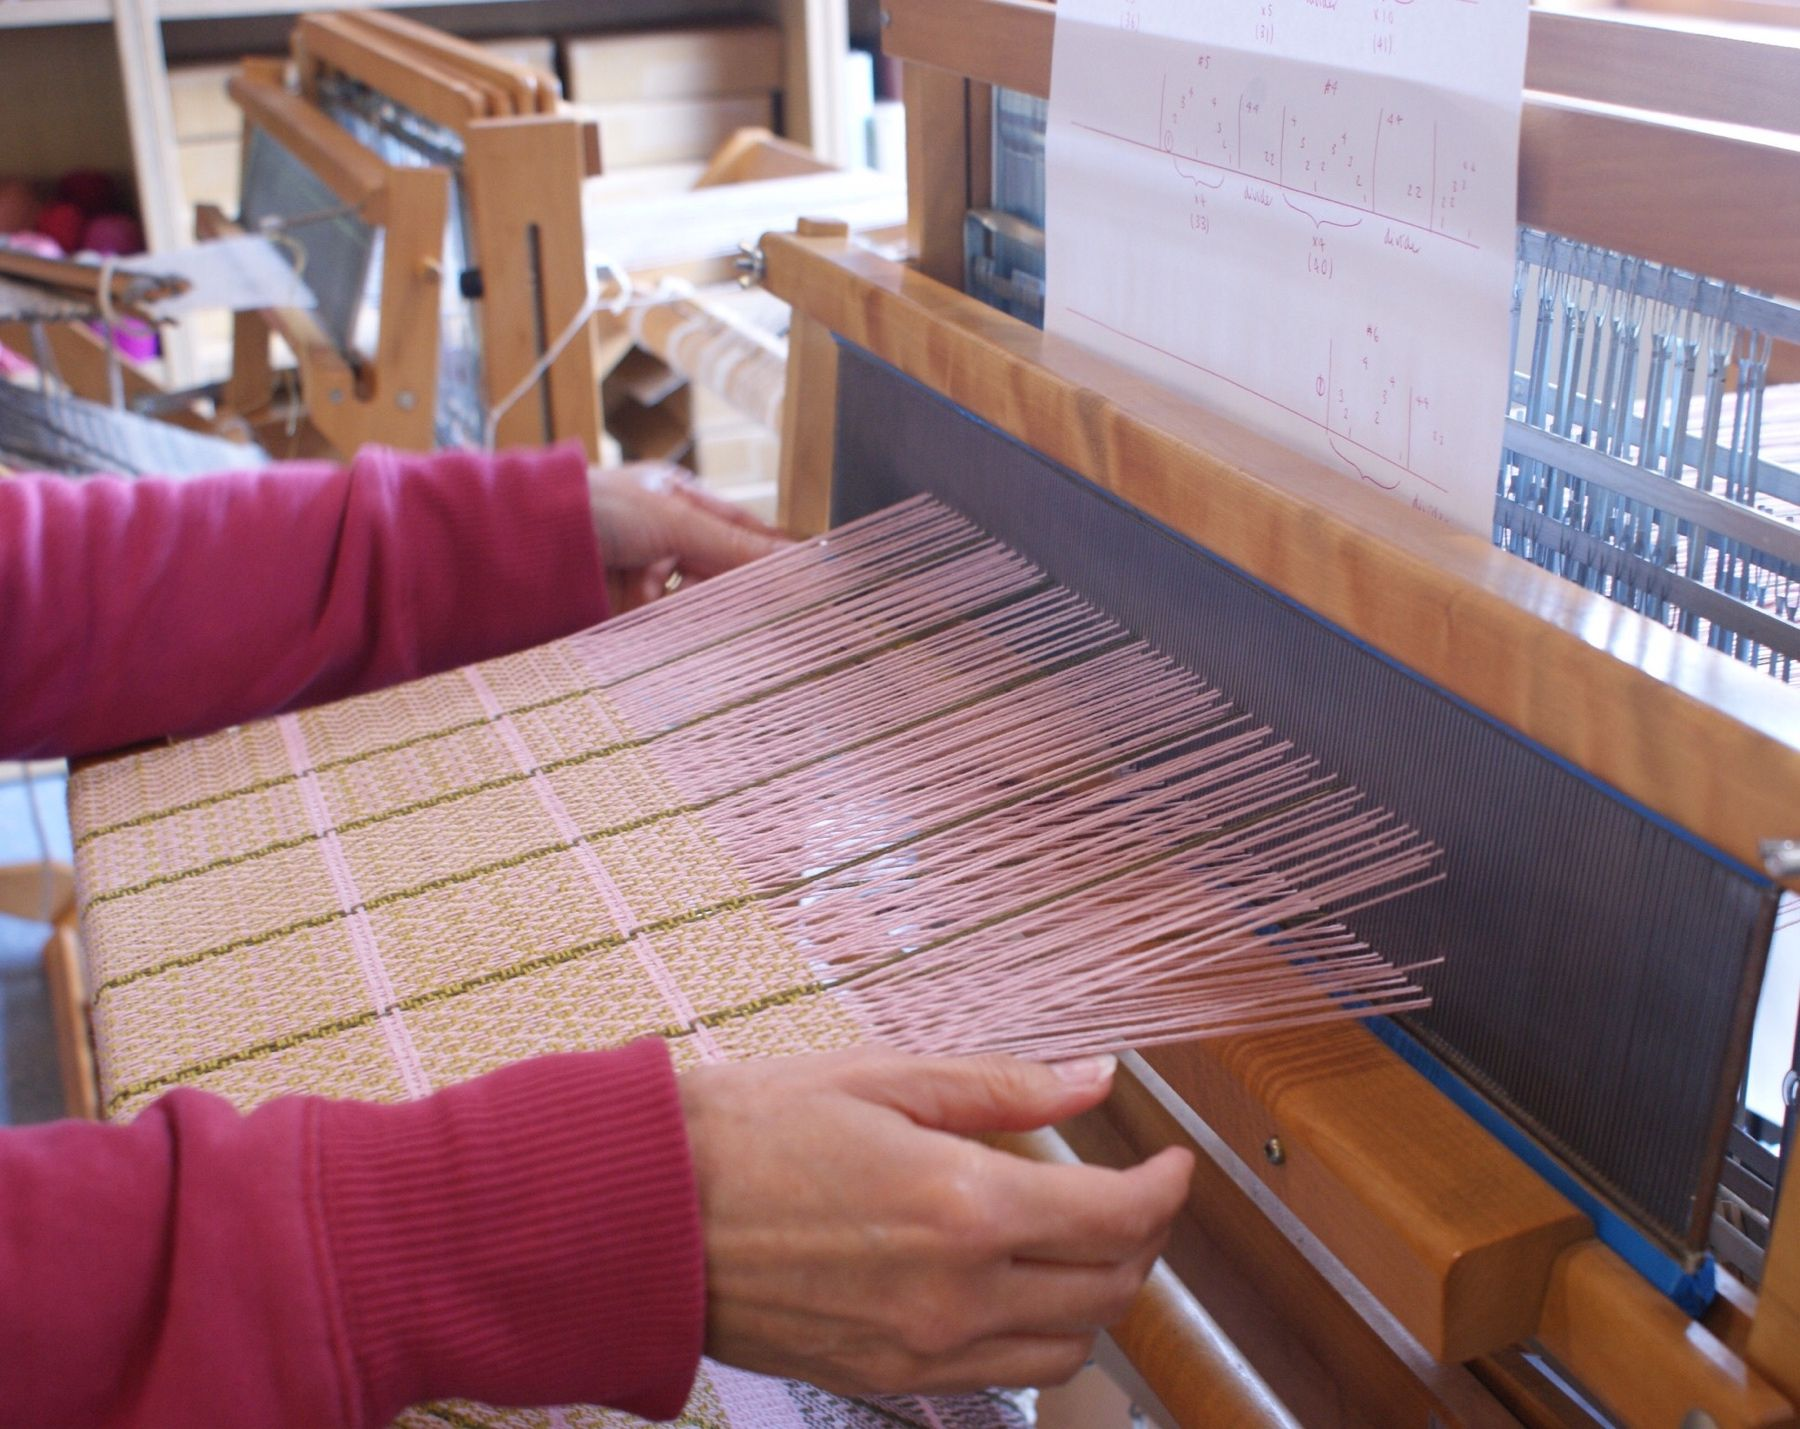 We love this pretty pink warp, paired with dark greens and ochres. This lovely warp has come to an end, so we can't wait to see what the next one looks like! 🌸 #orkney #visitorkney #loomweaving #weaversofinstagram #loom #weaving #design #striped #stripes #wool #shetlandwool #handmade #workshop #learning #course